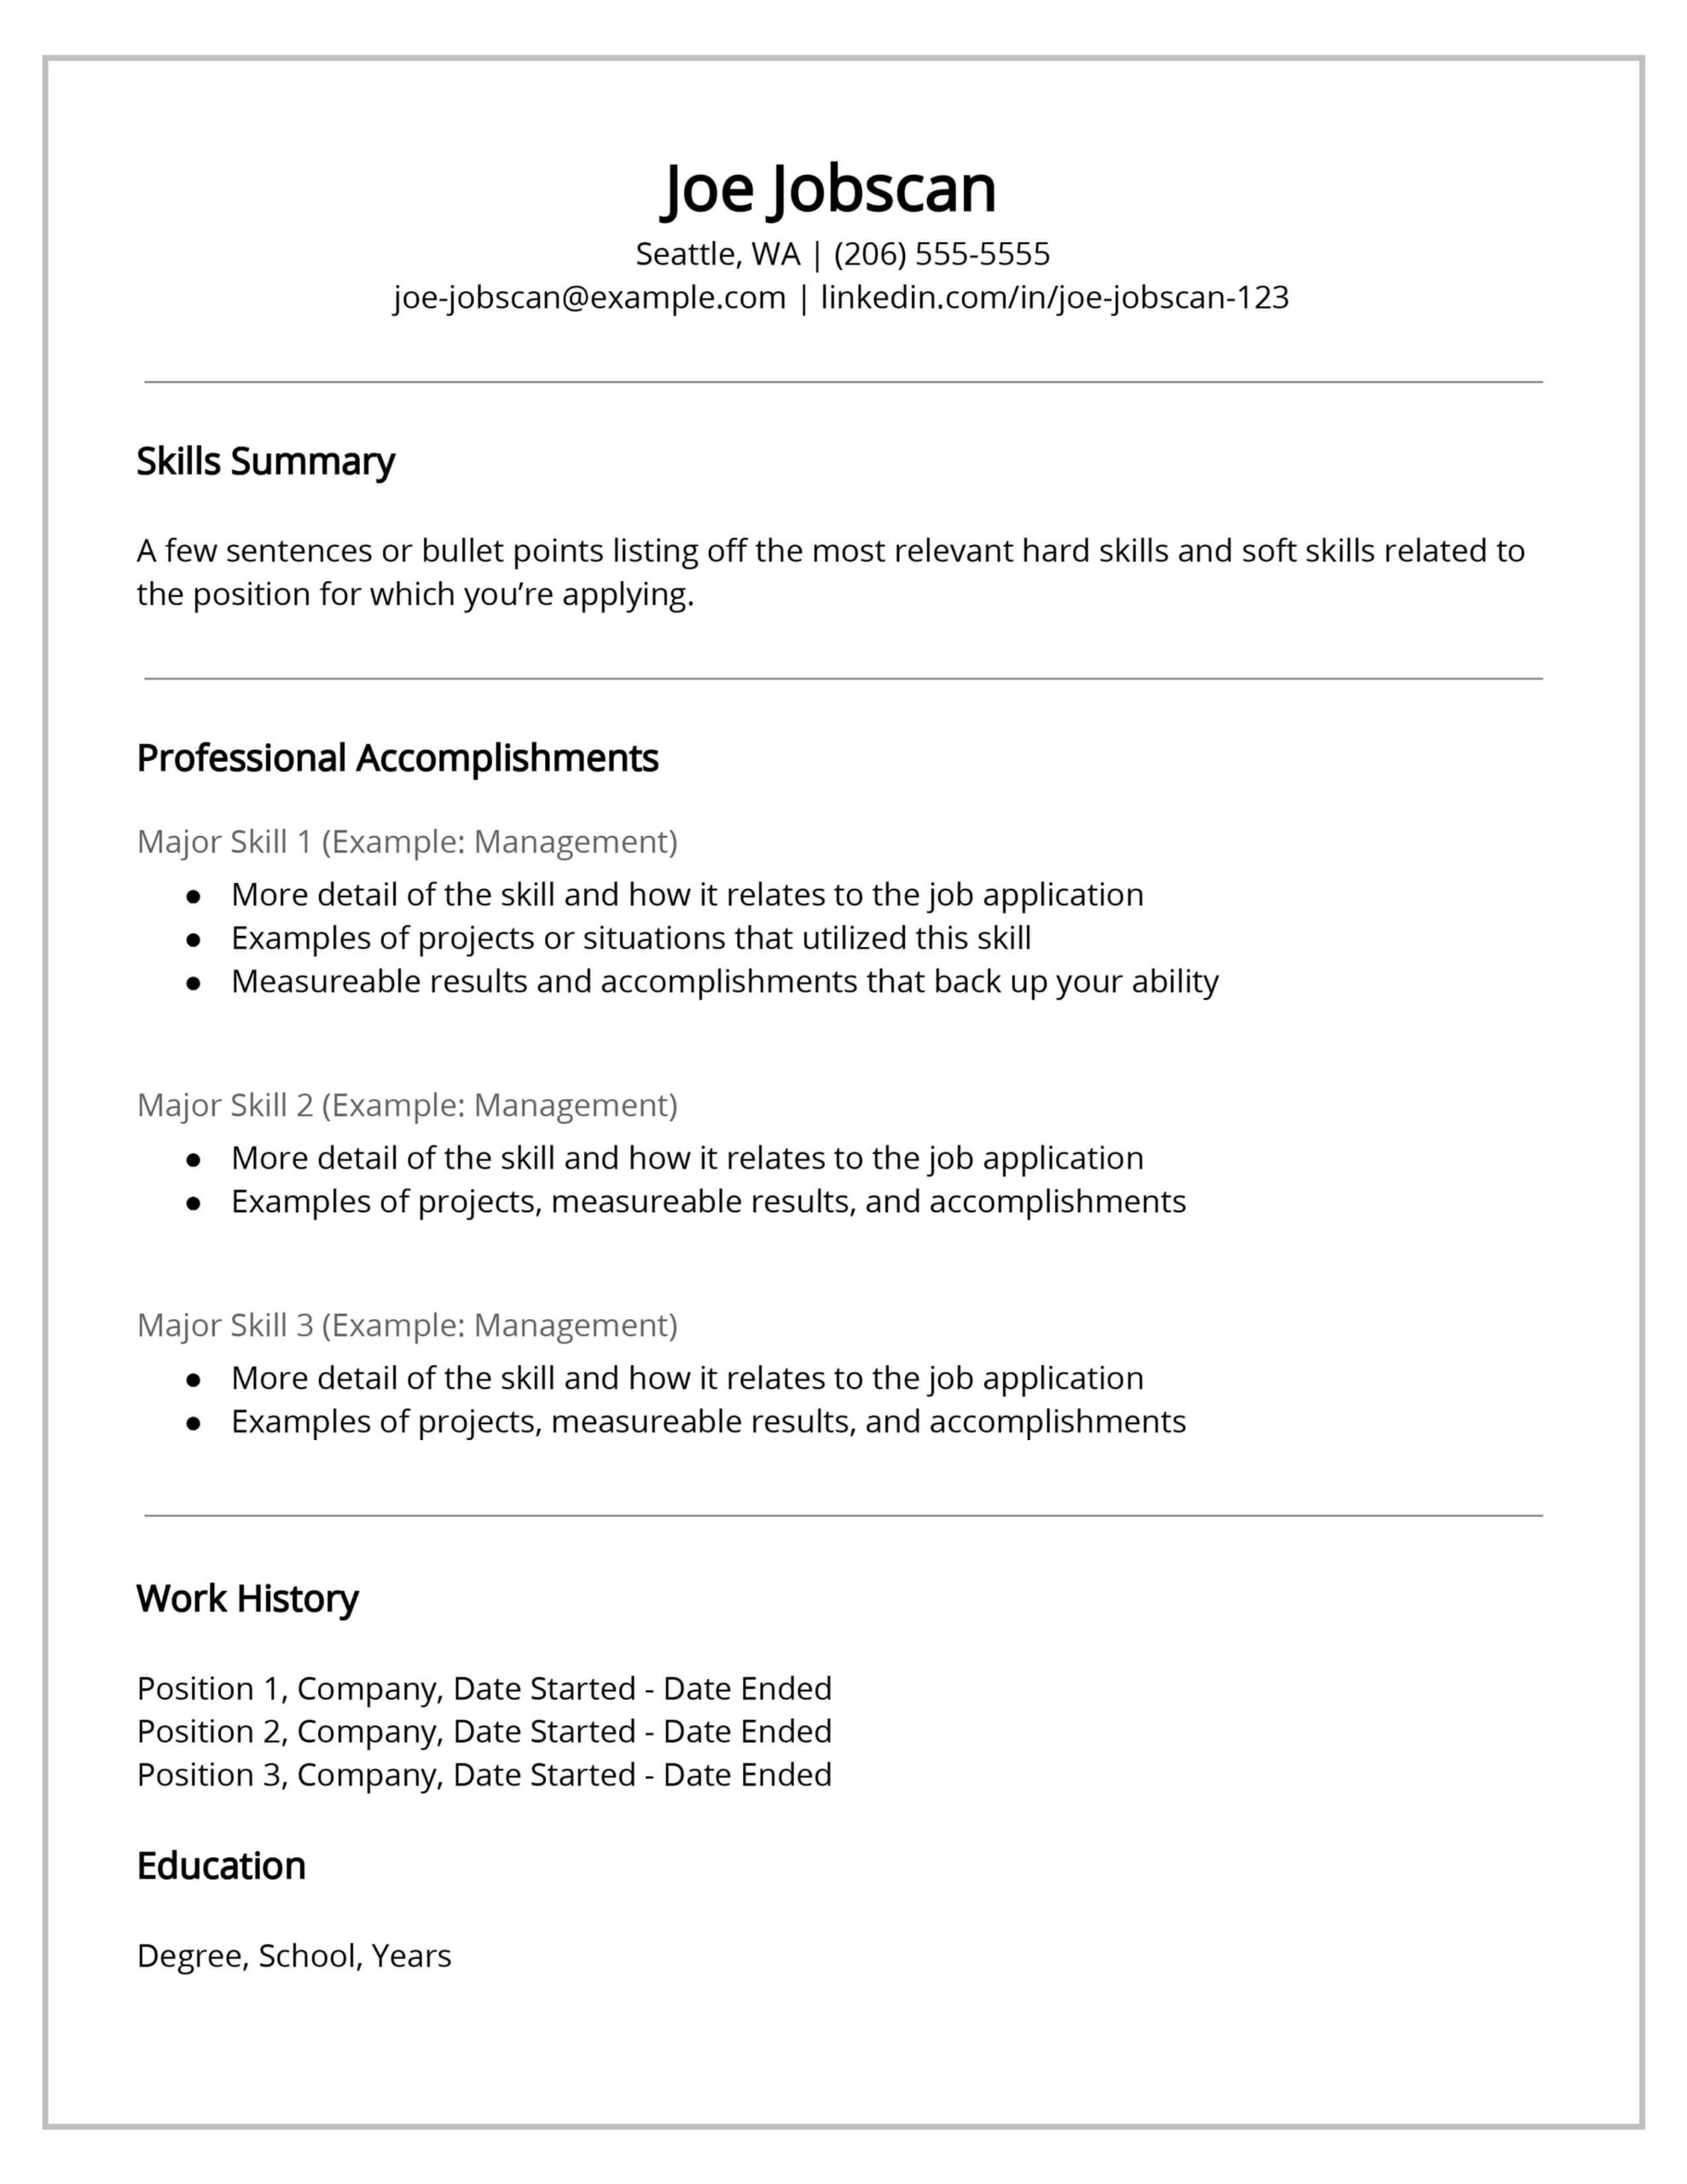 recruiters hate the functional resume format here skills based template for school Resume Functional Skills Based Resume Template